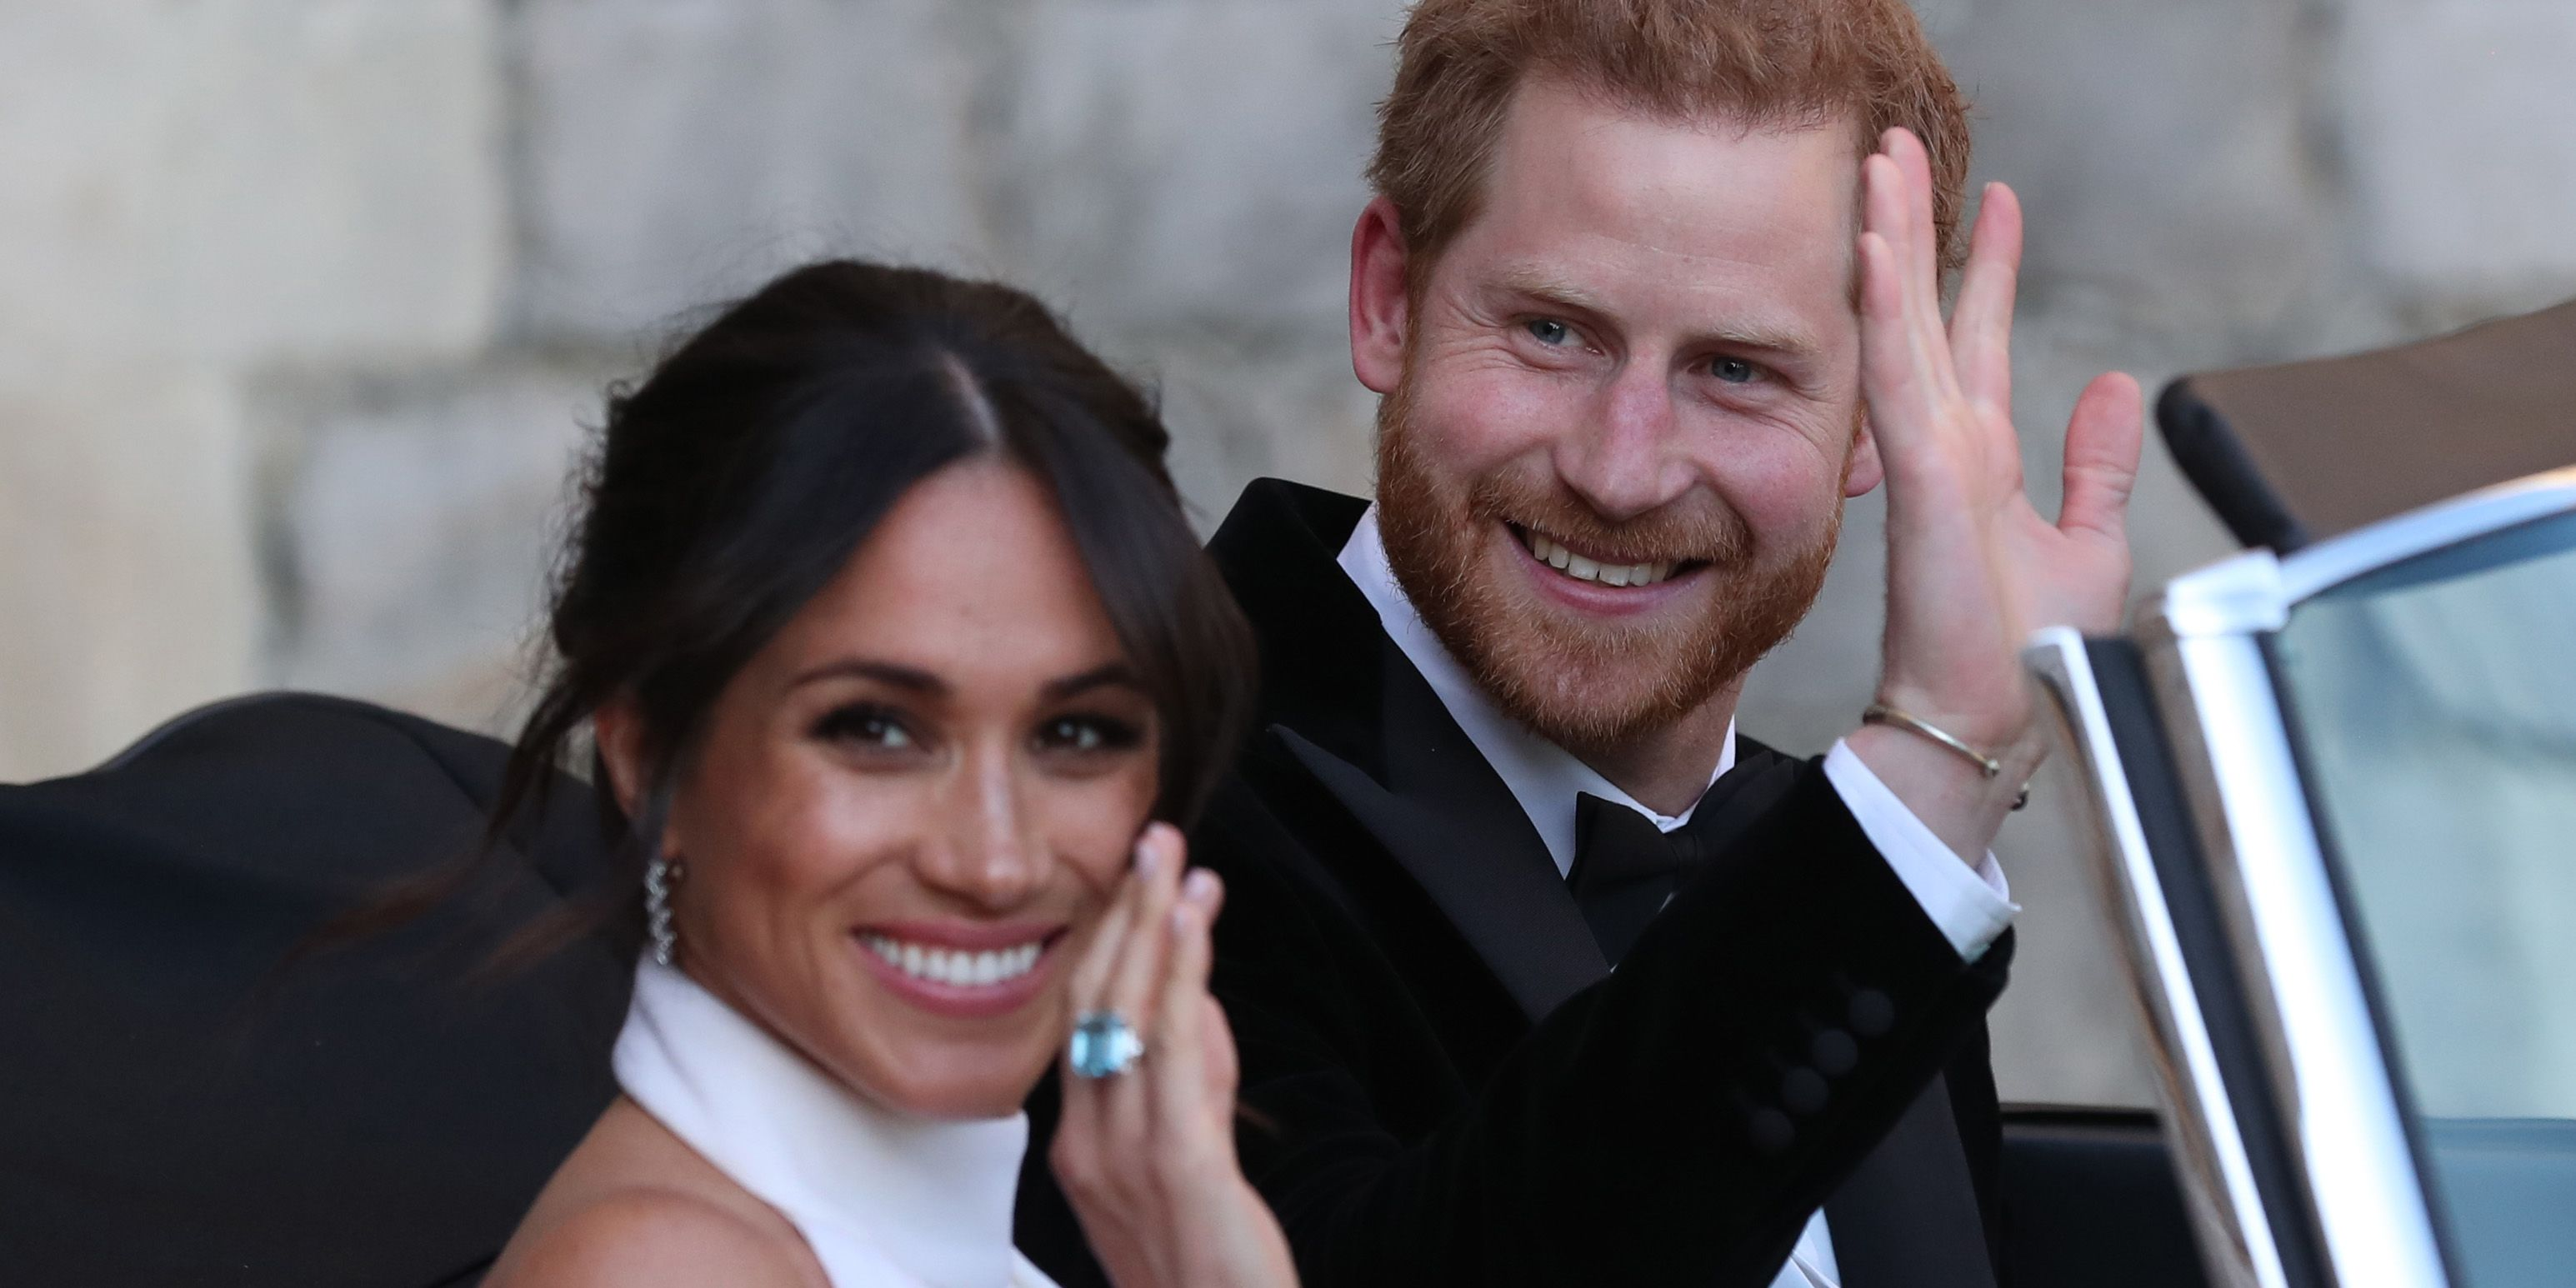 The Royal Wedding Moment That Proves Meghan Markle and Prince Harry Are Equals